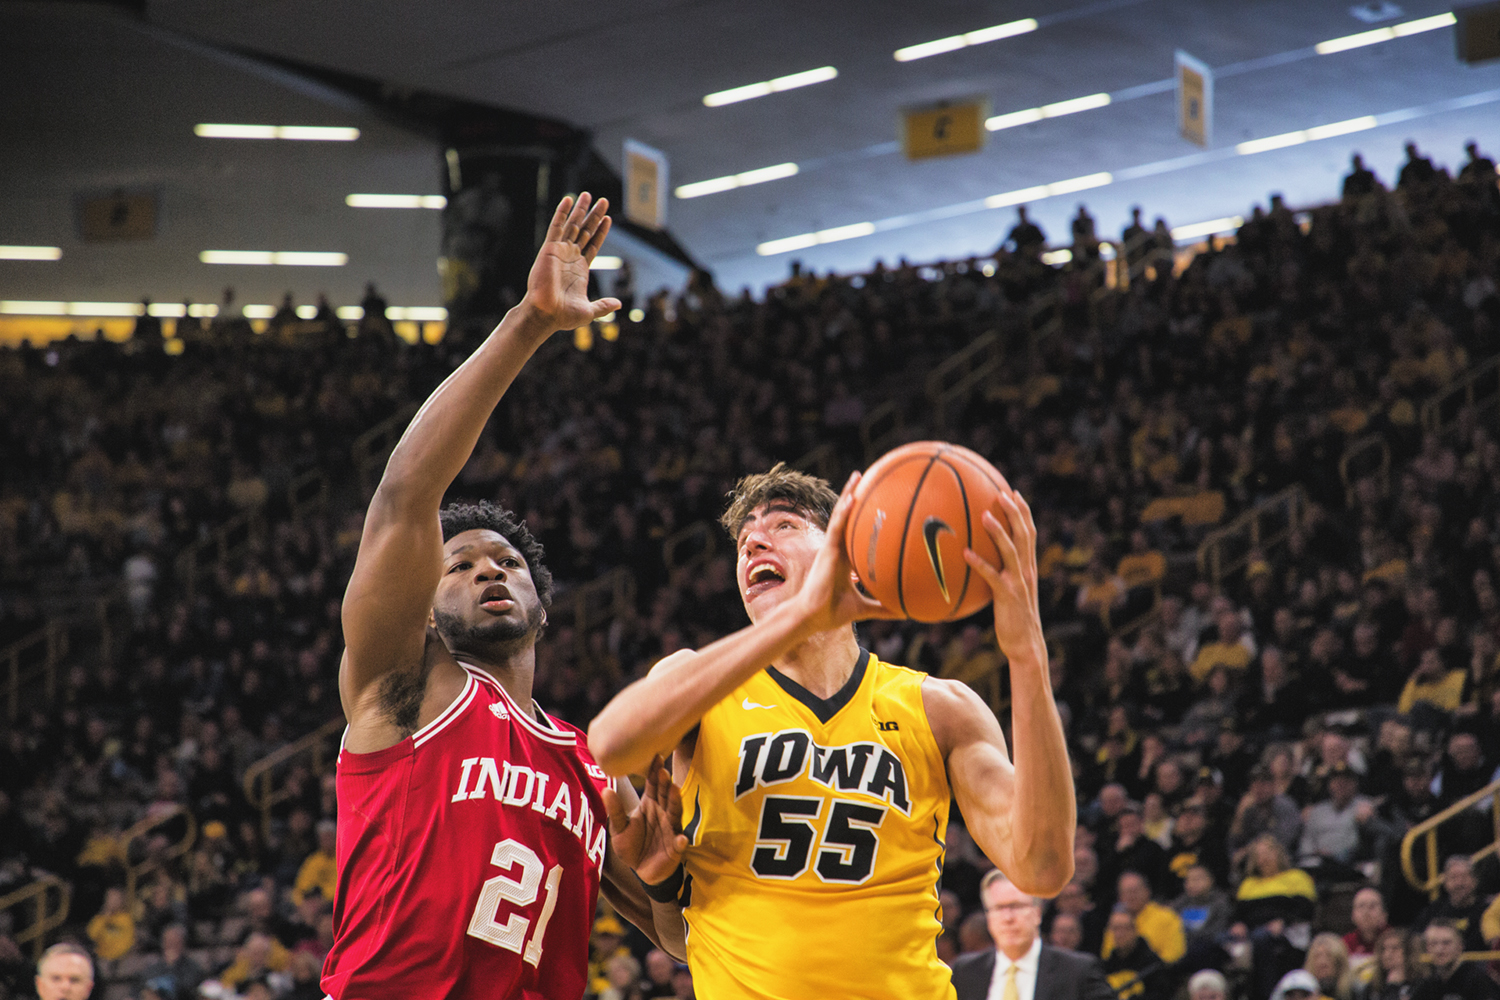 Iowa forward Luka Garza controls the ball during a game against Indiana University at Carver-Hawkeye Arena on Saturday, Feb. 17, 2018. The Hoosiers defeated the Hawkeyes 84 to 82.